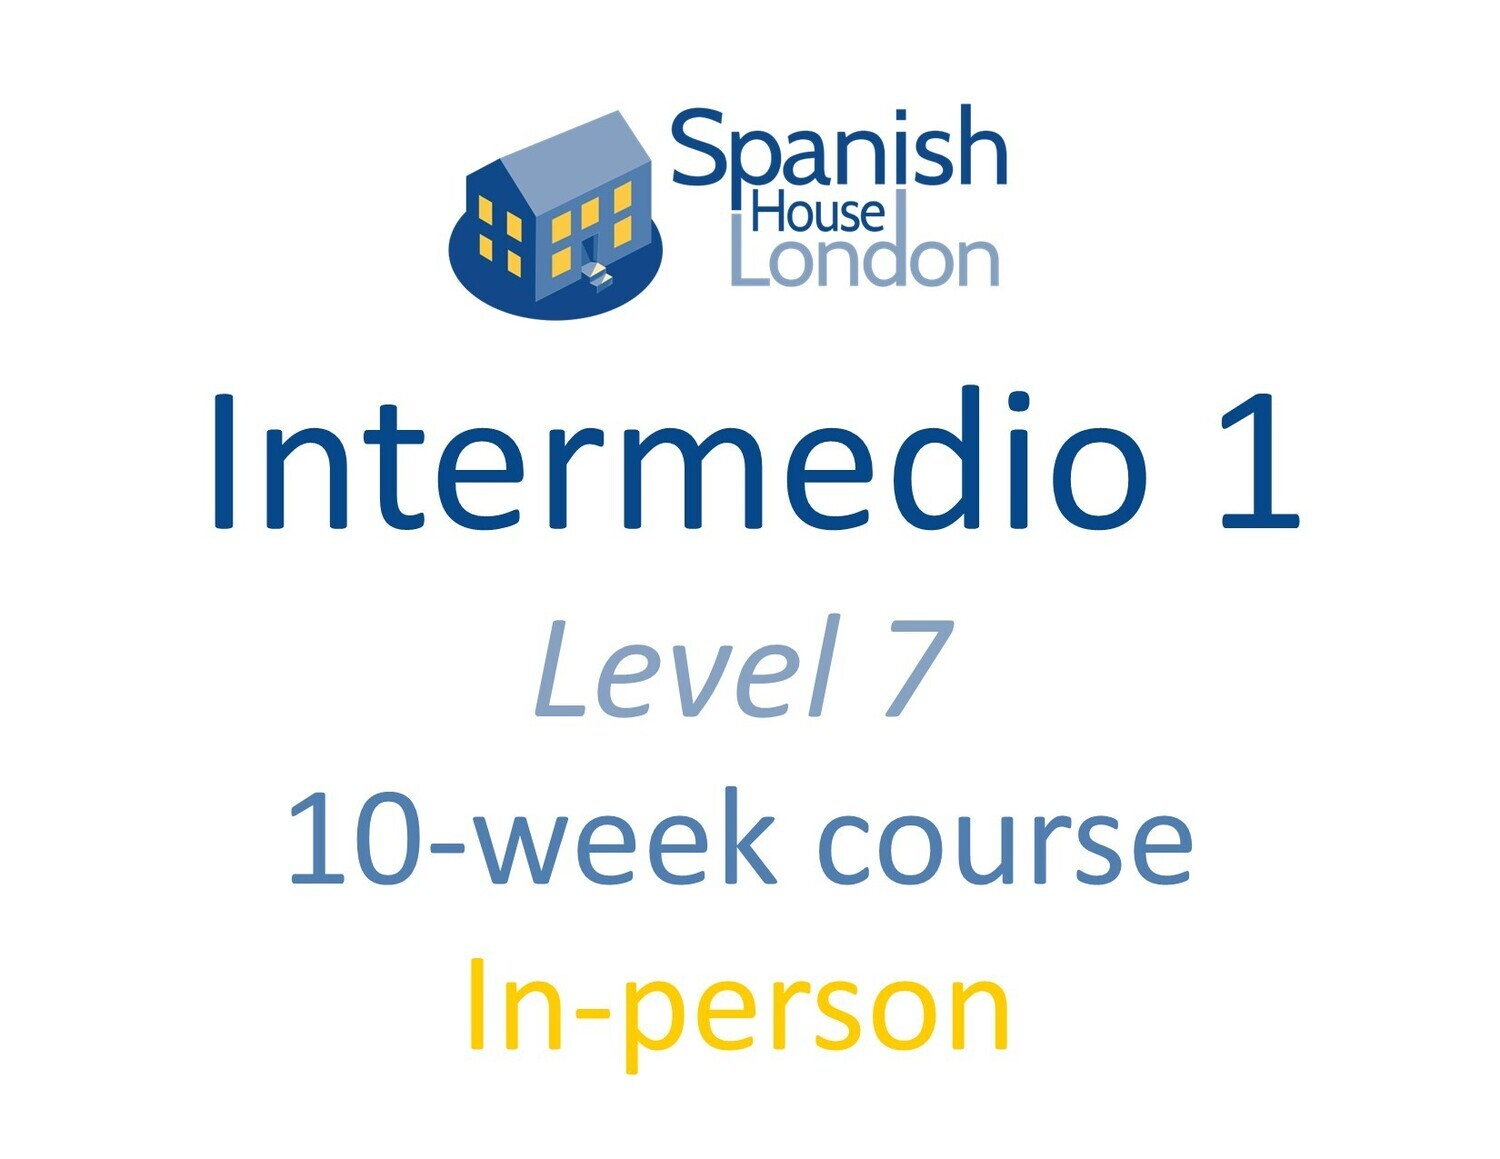 Intermedio 1 Course starting on 10th January at 7.30pm in Clapham North